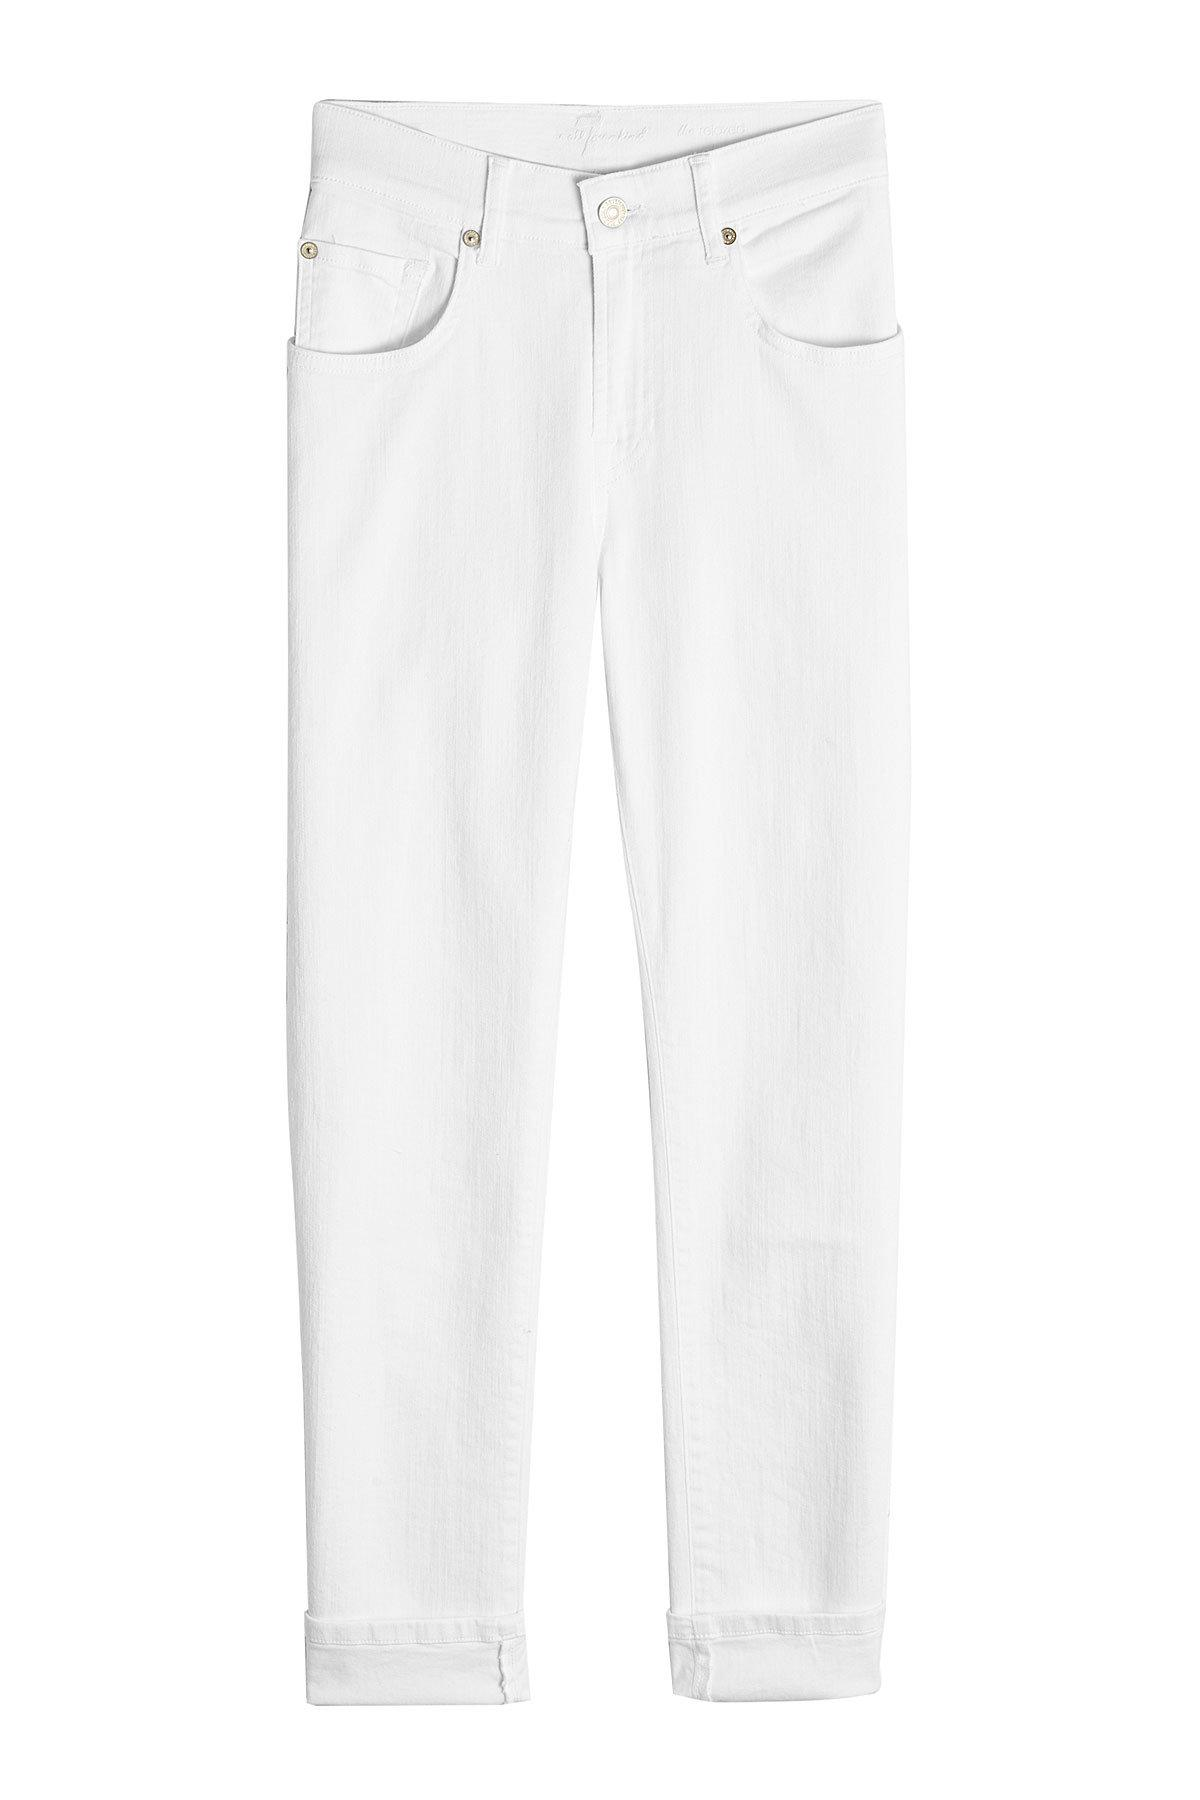 lyst 7 for all mankind cropped skinny jeans in white Blue Jeans 7 for all mankind women s white cropped skinny jeans